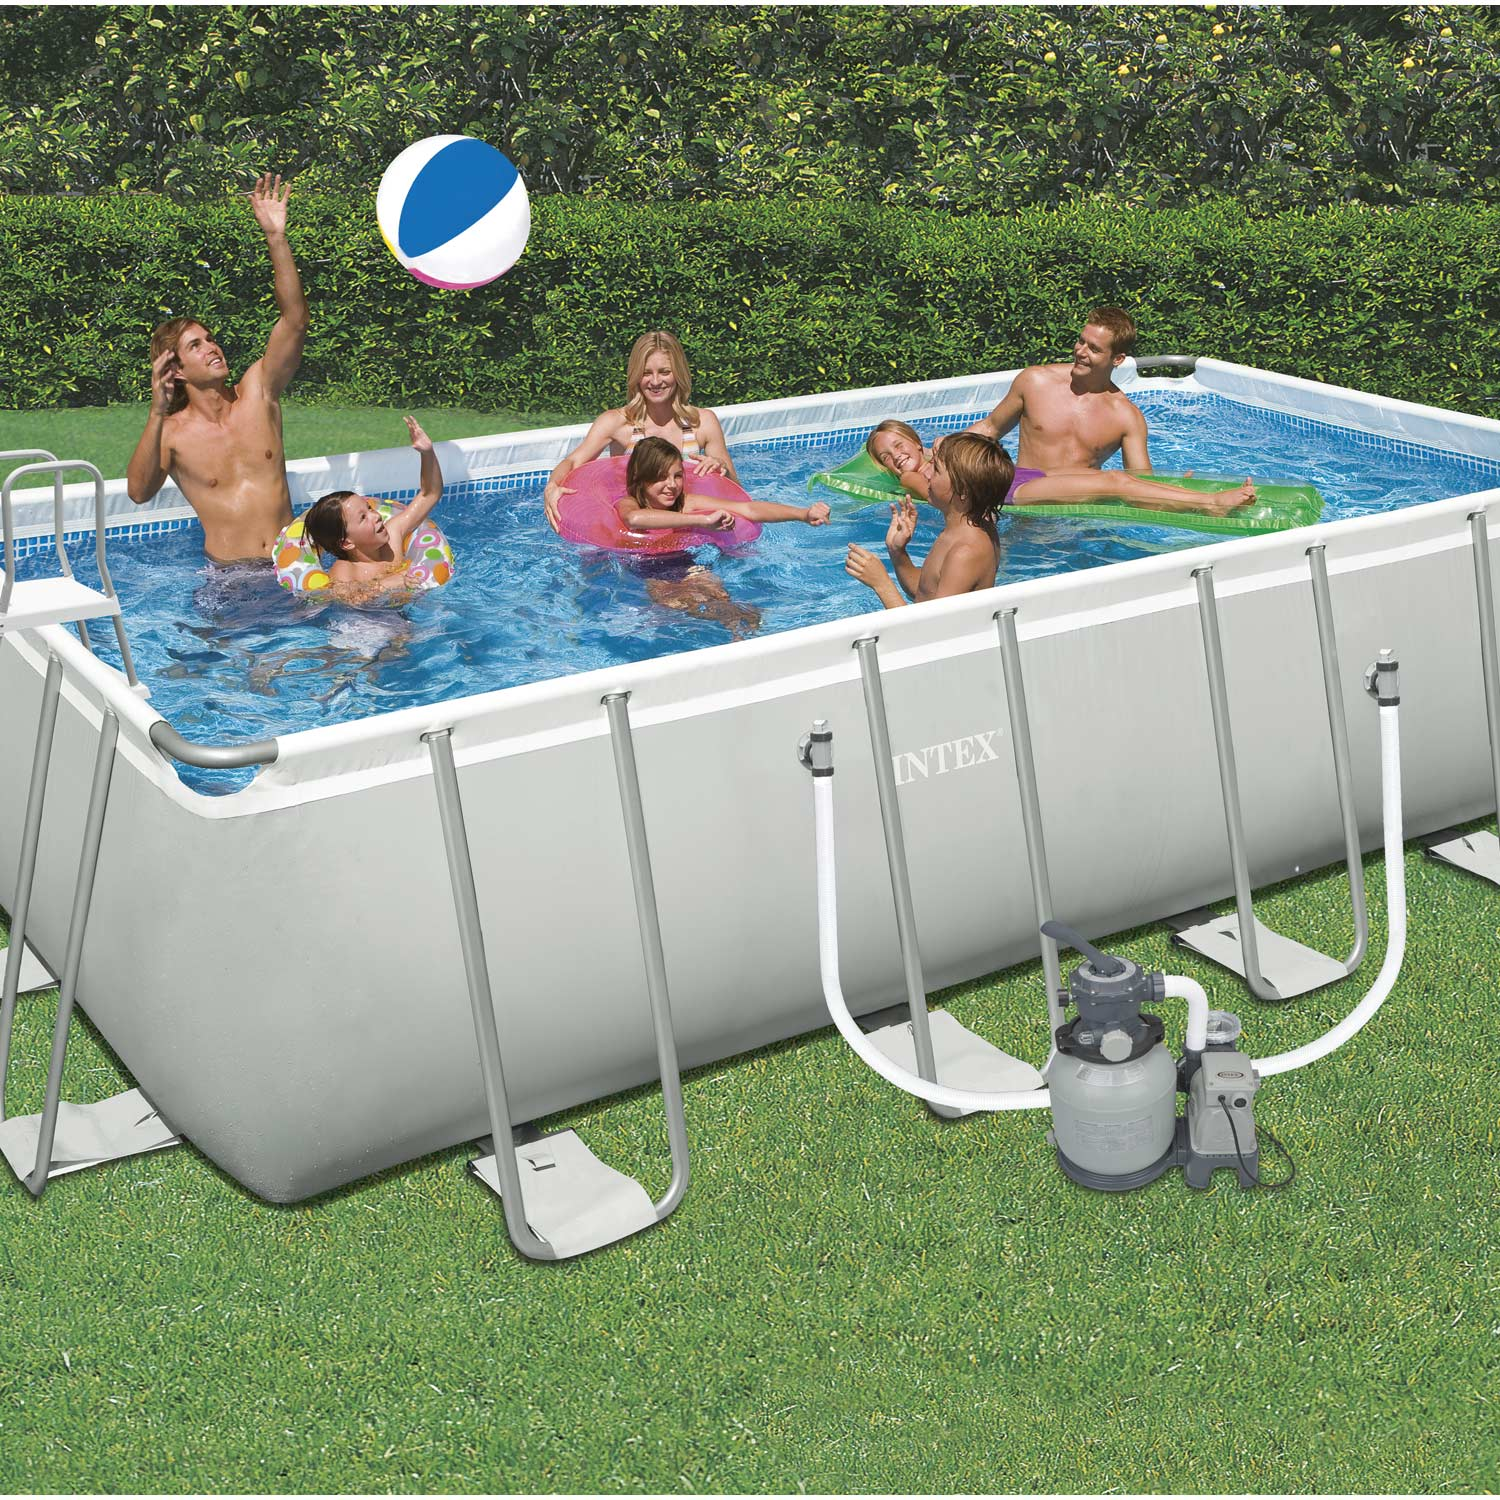 Piscine hors sol autoportante tubulaire intex l x l for Piscine hors sol en solde